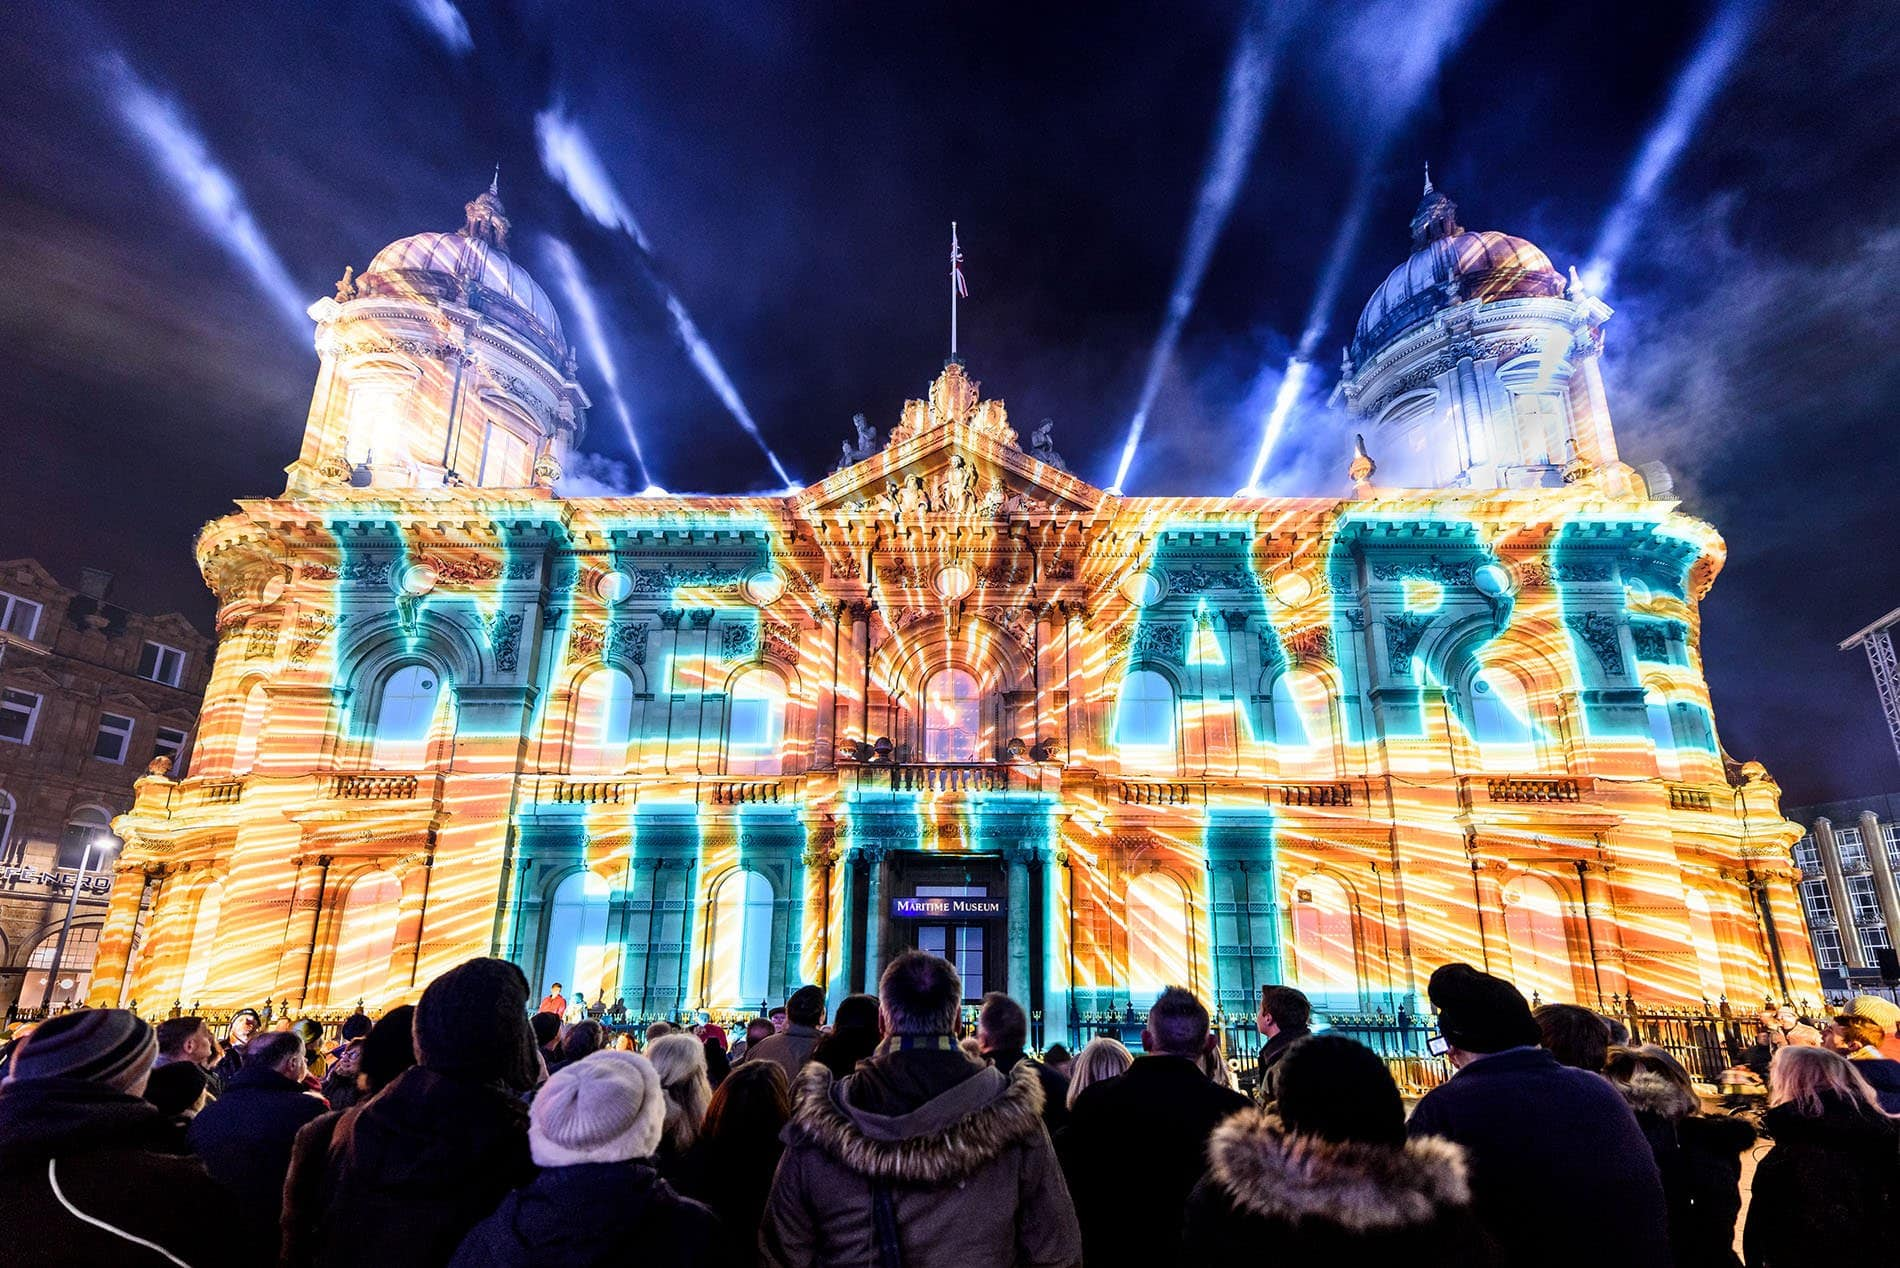 hull city of culture photo